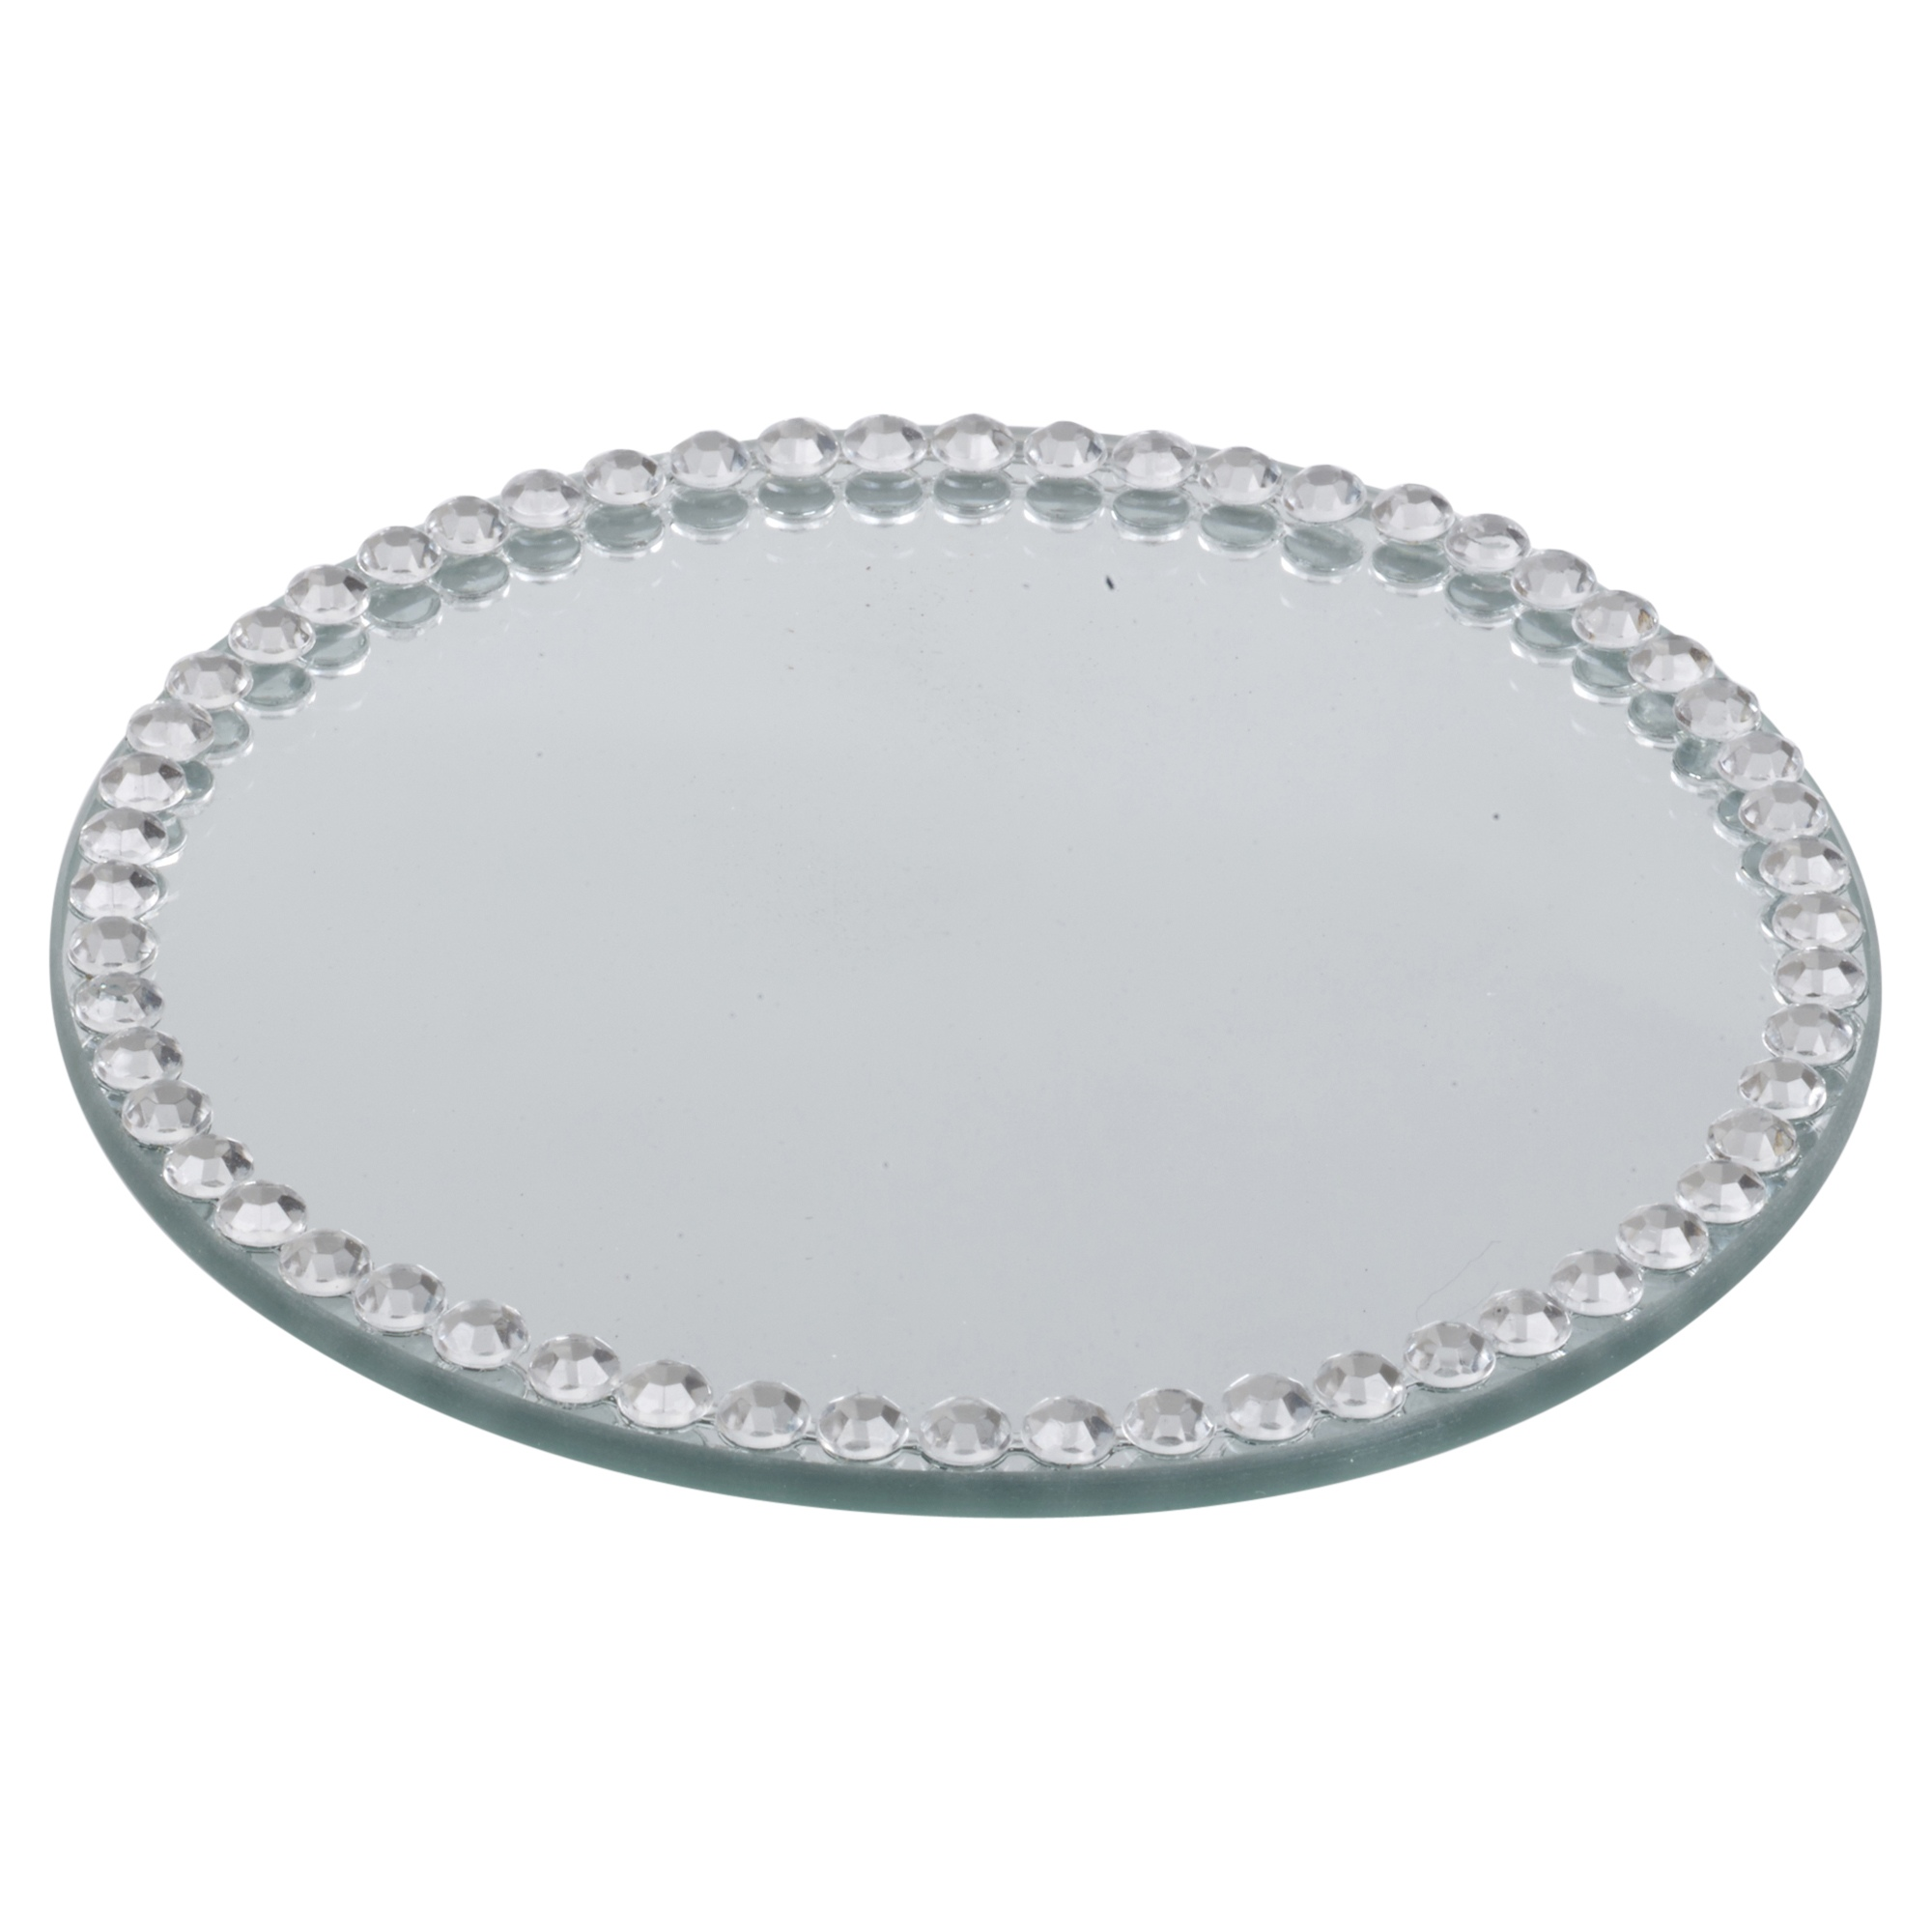 Round Or Square Diamond Mirror Candle Plate Cake Stand